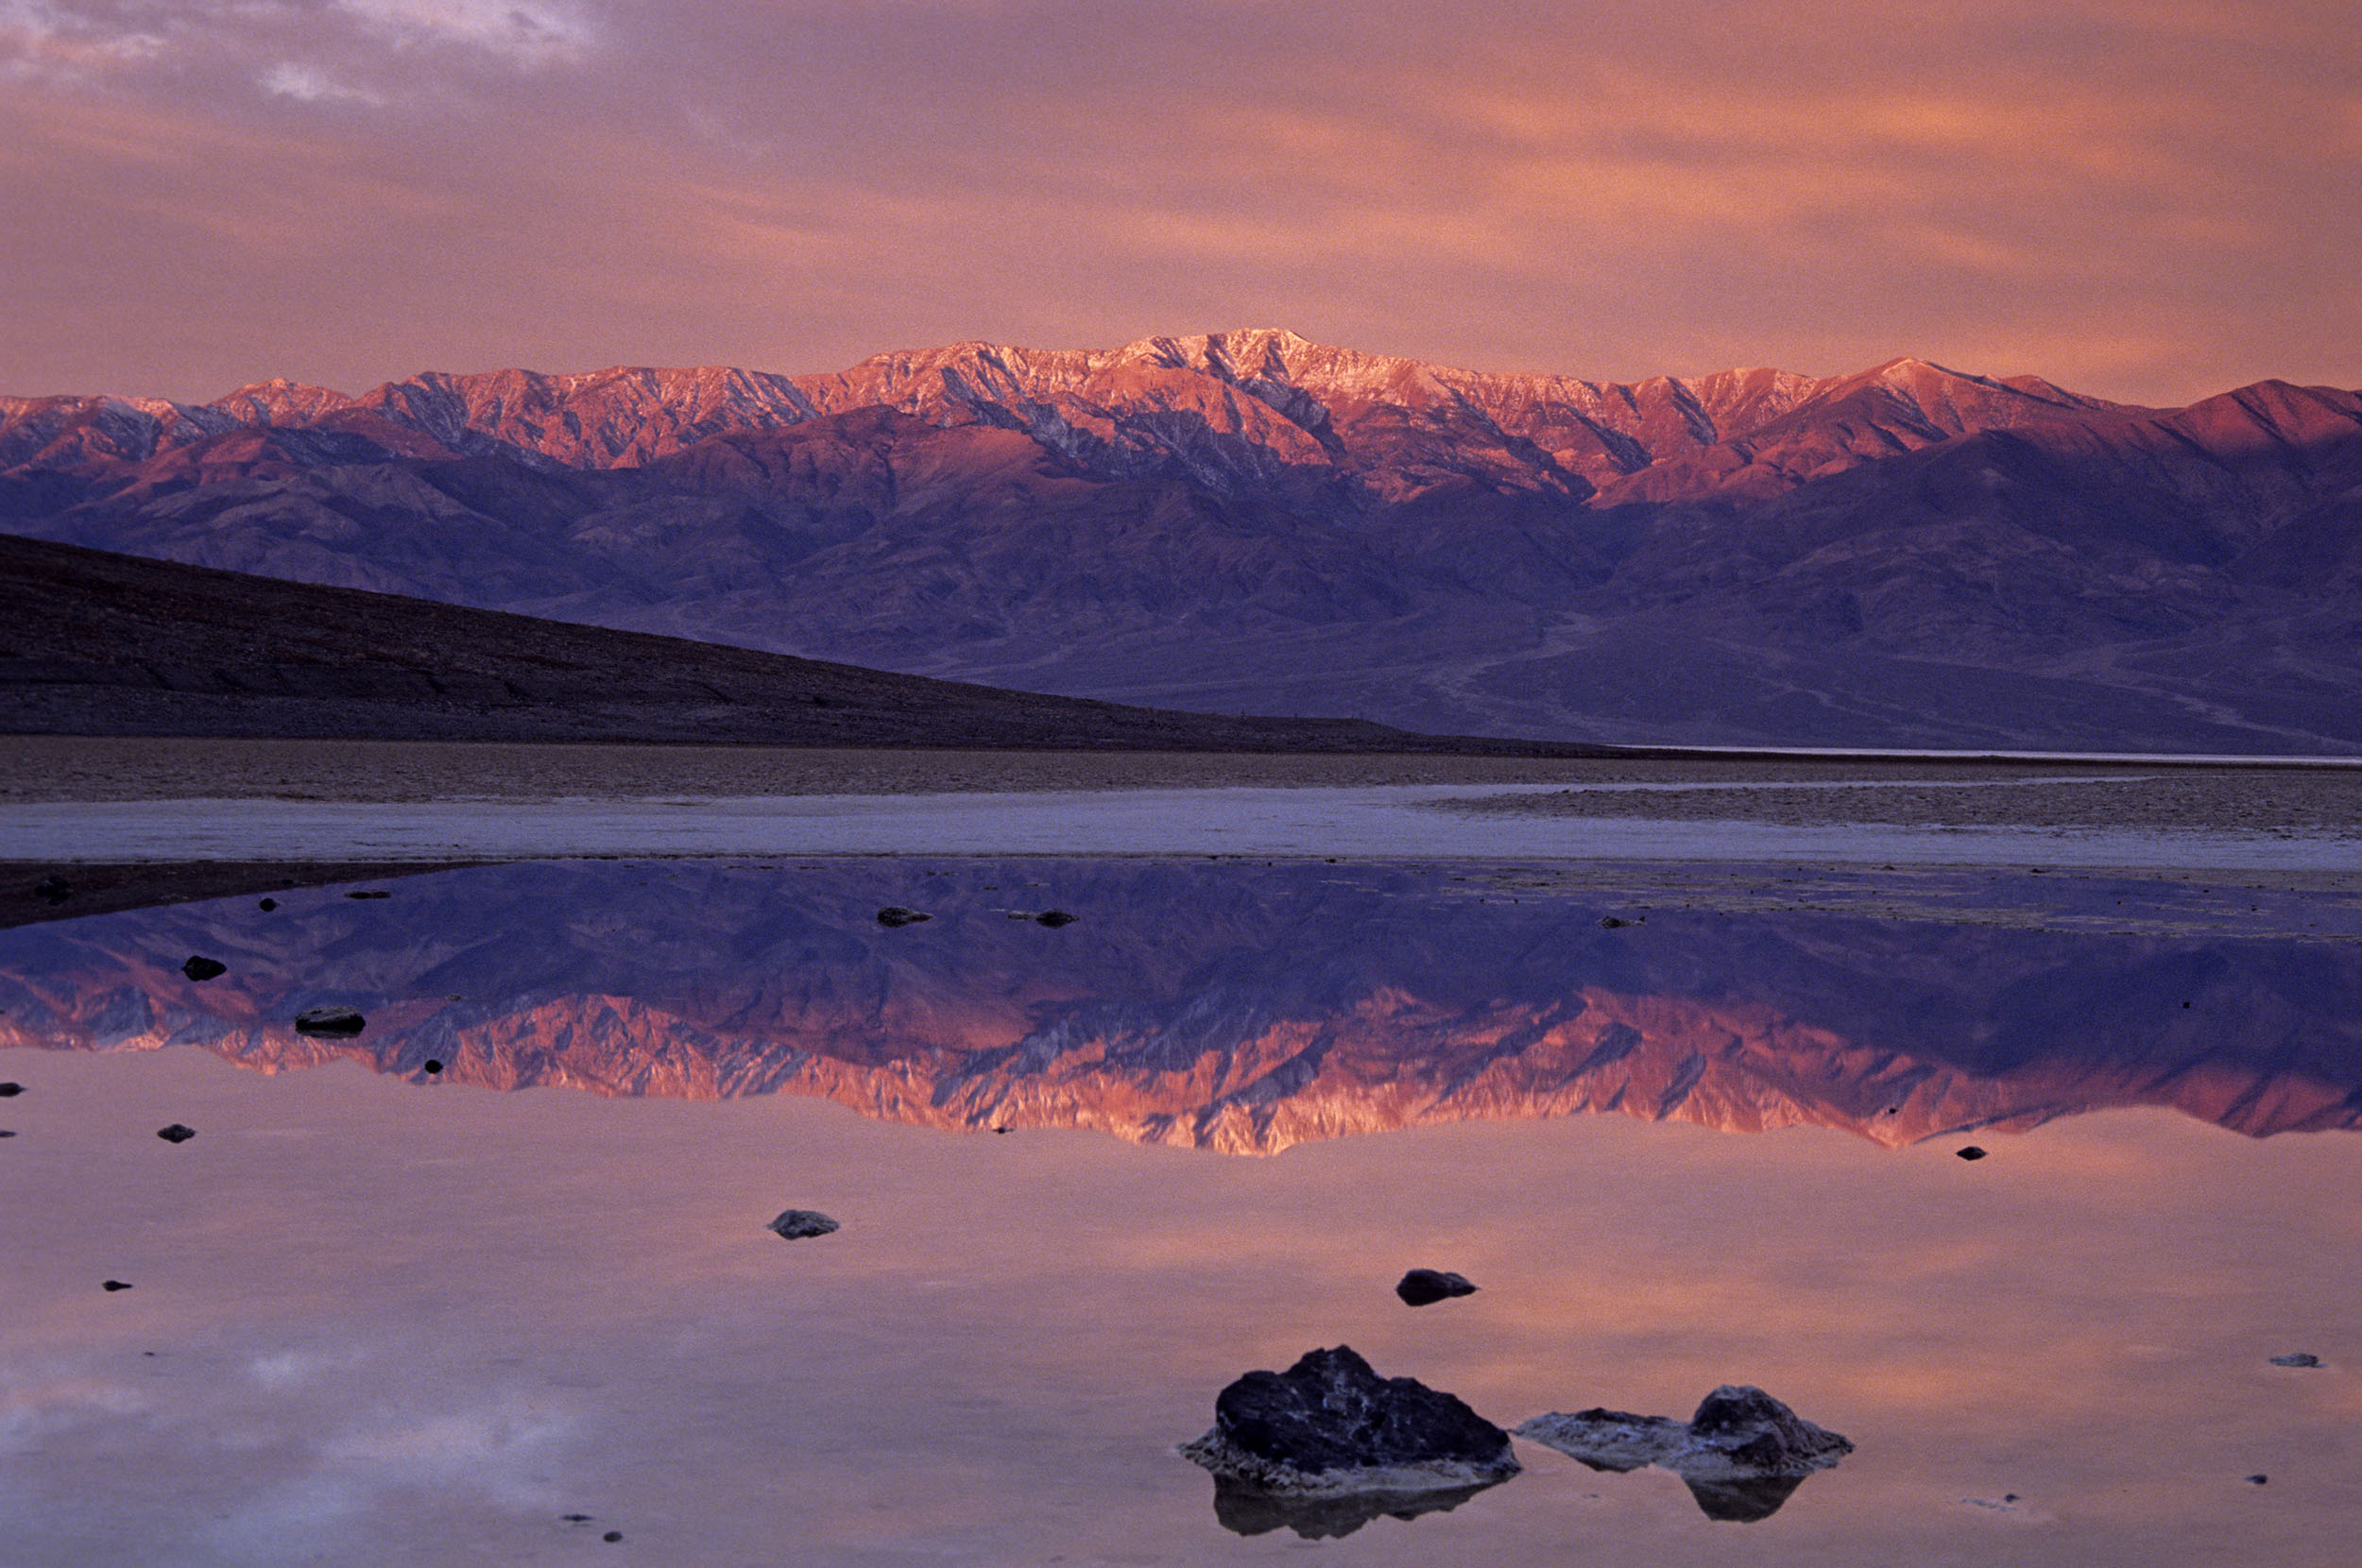 Sunrise colours on Telescope peak reflected in pond at Badwater